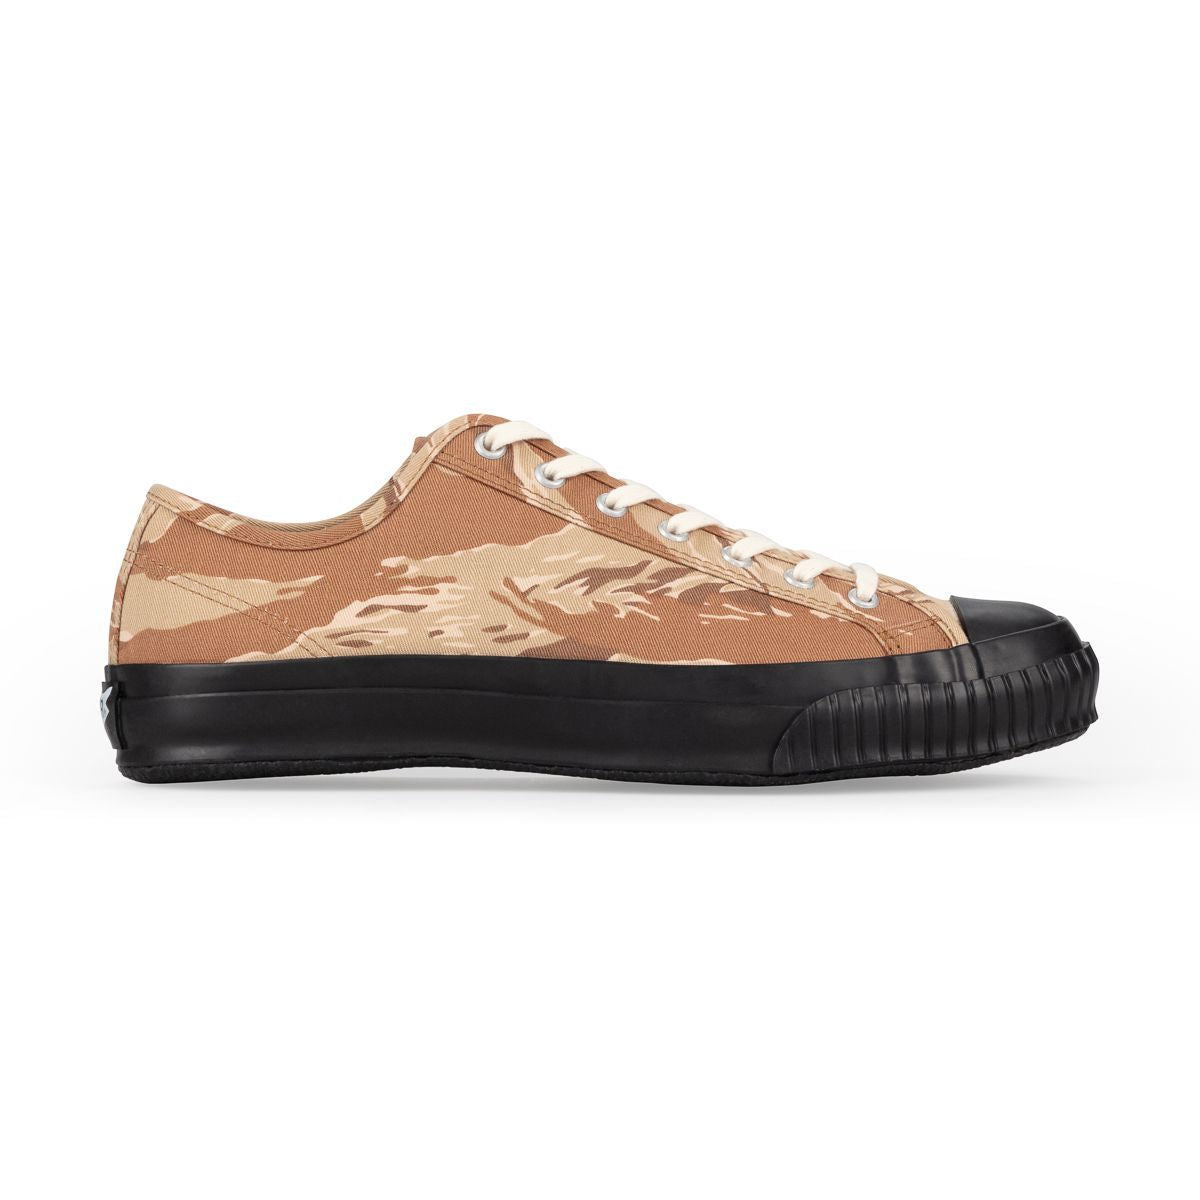 Cadet Sneakers - Beach Tiger